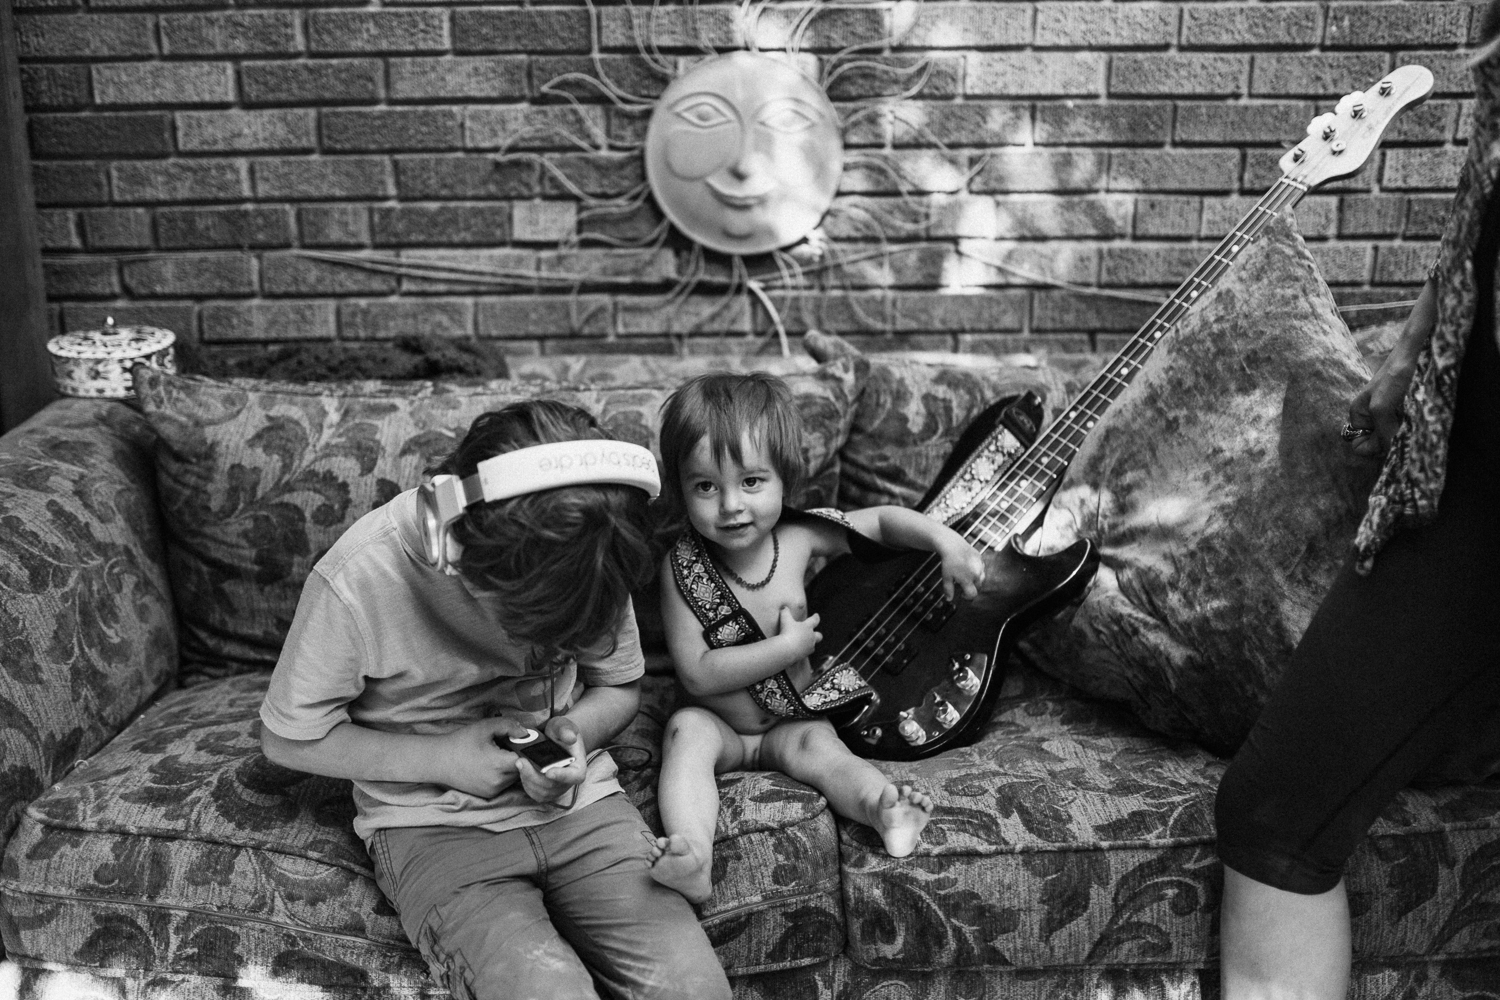 brothers-playing-with-guitar-on-couch-in-backyard-in-home-family-session-with-jen-fairchild-photography-in-sugarhouse-utah